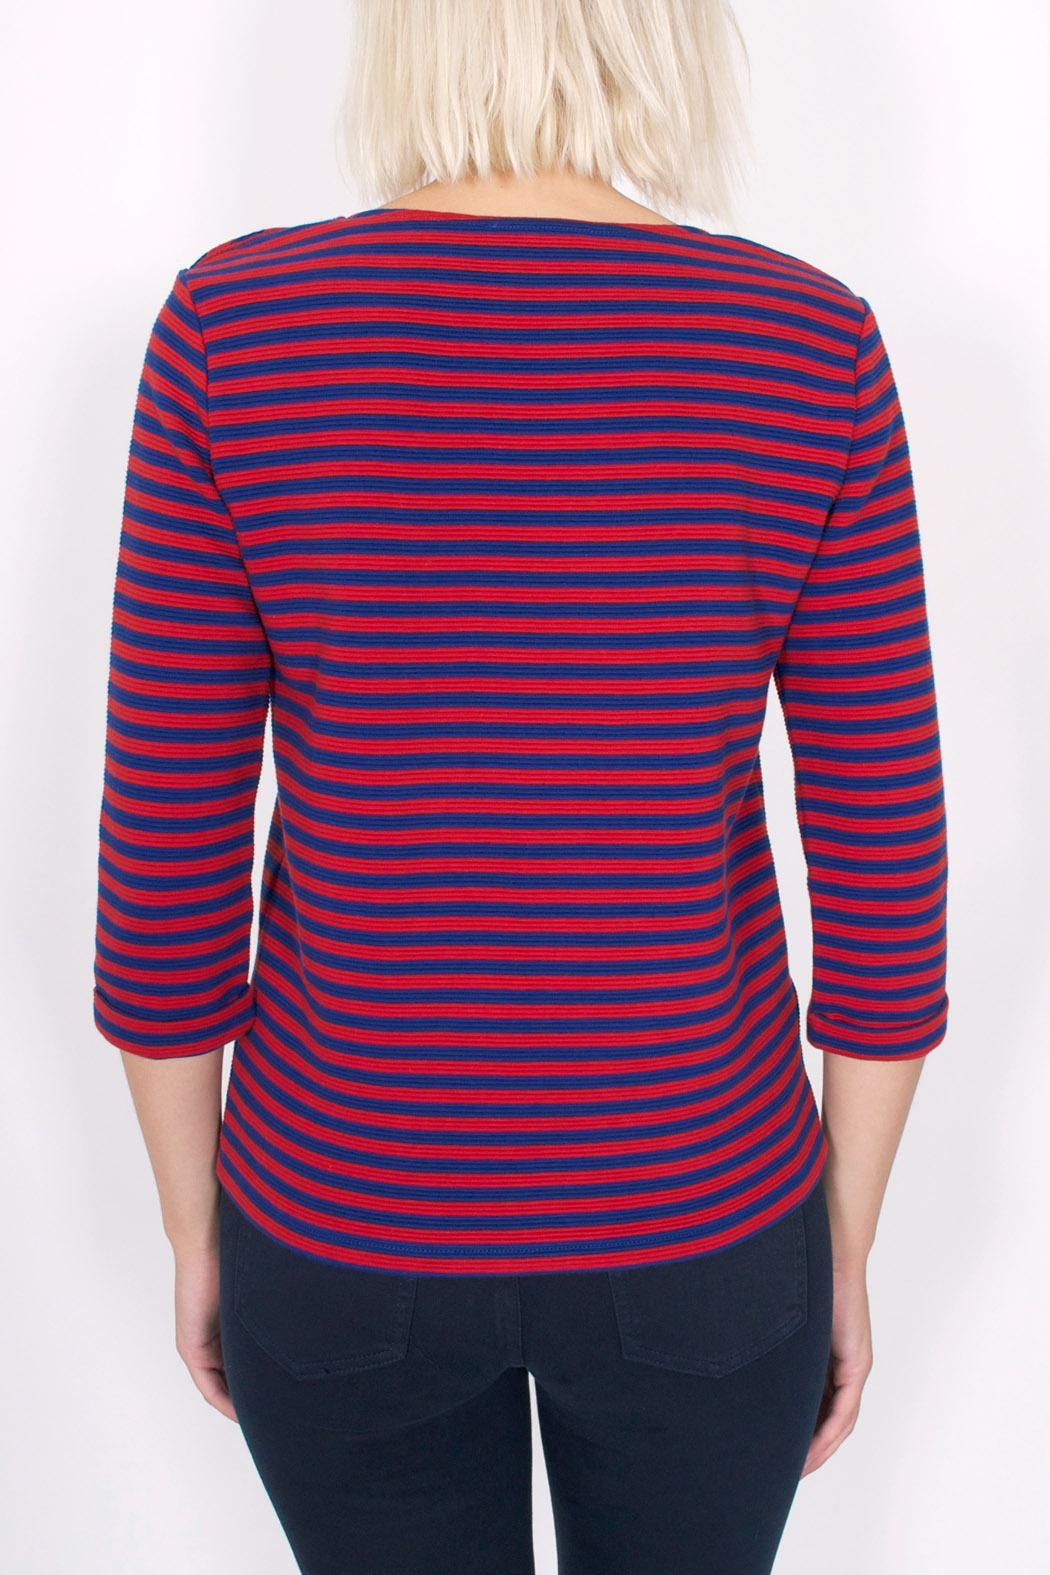 Sessun Emile Striped Top - Side Cropped Image